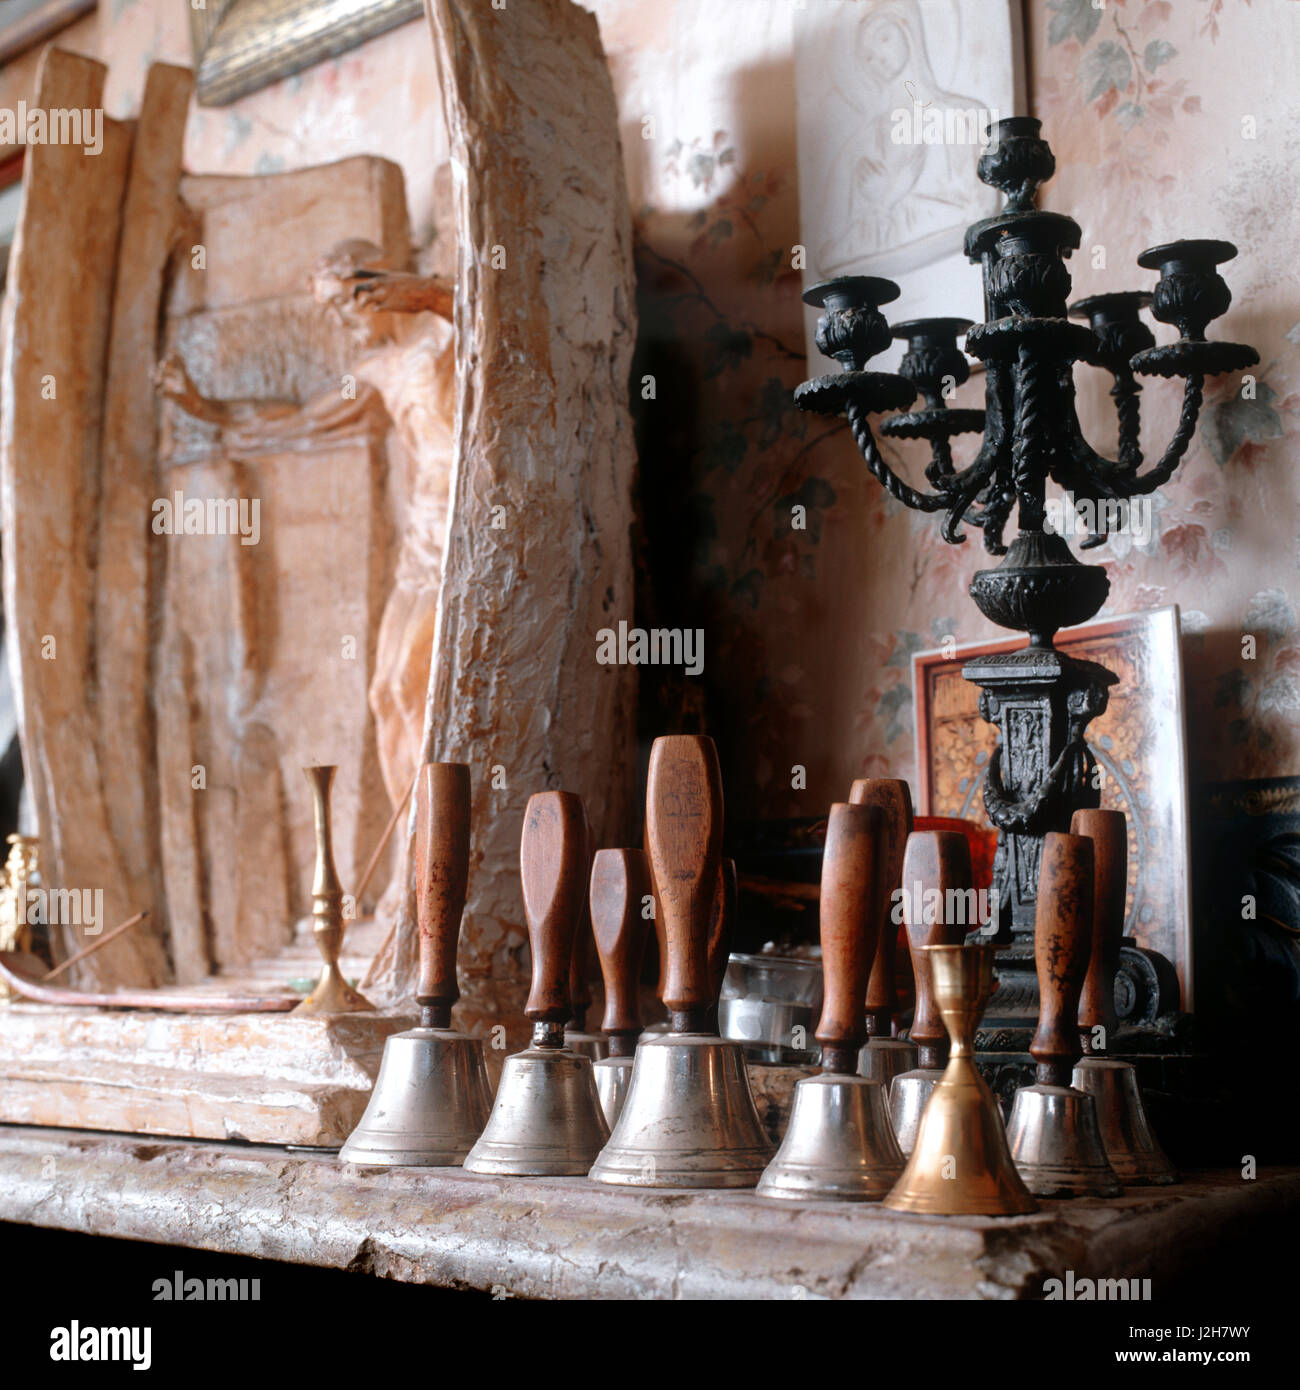 Bells and candelabra on mantelpiece. - Stock Image